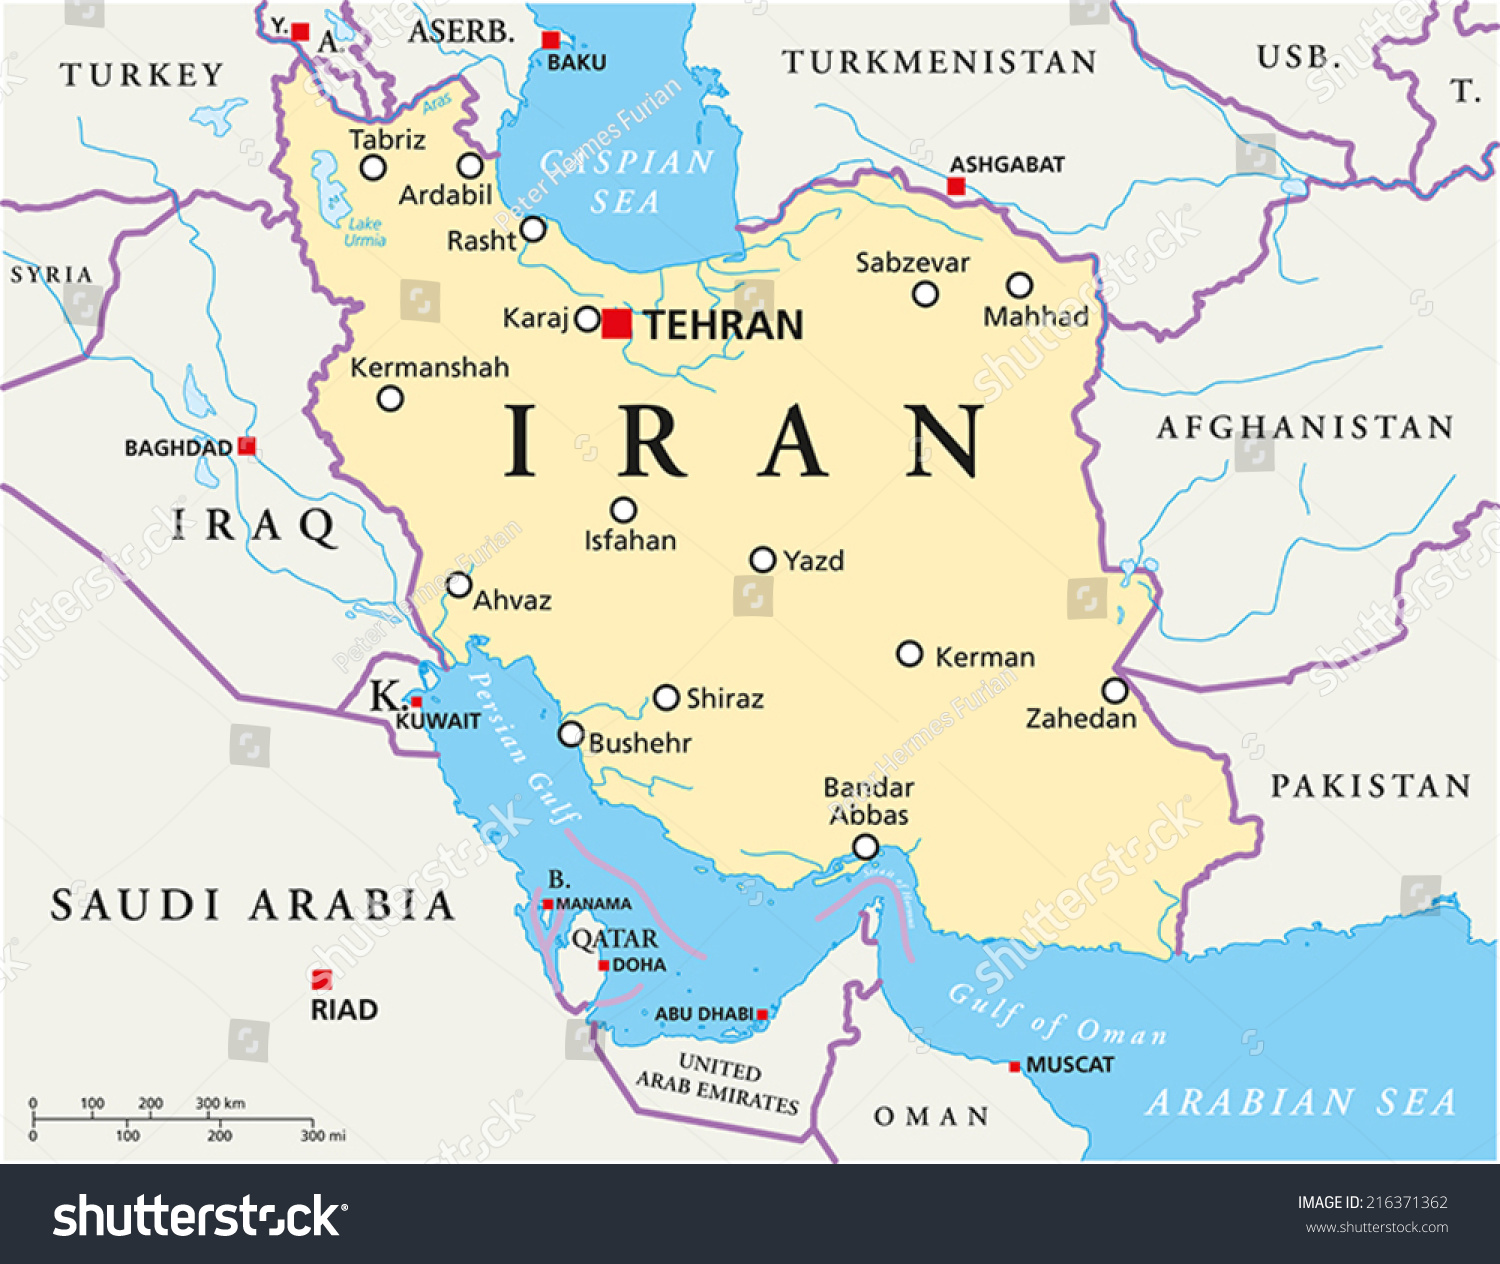 Iran political map capital tehran national stock vector 216371362 iran political map with capital tehran national borders most important cities rivers and gumiabroncs Gallery